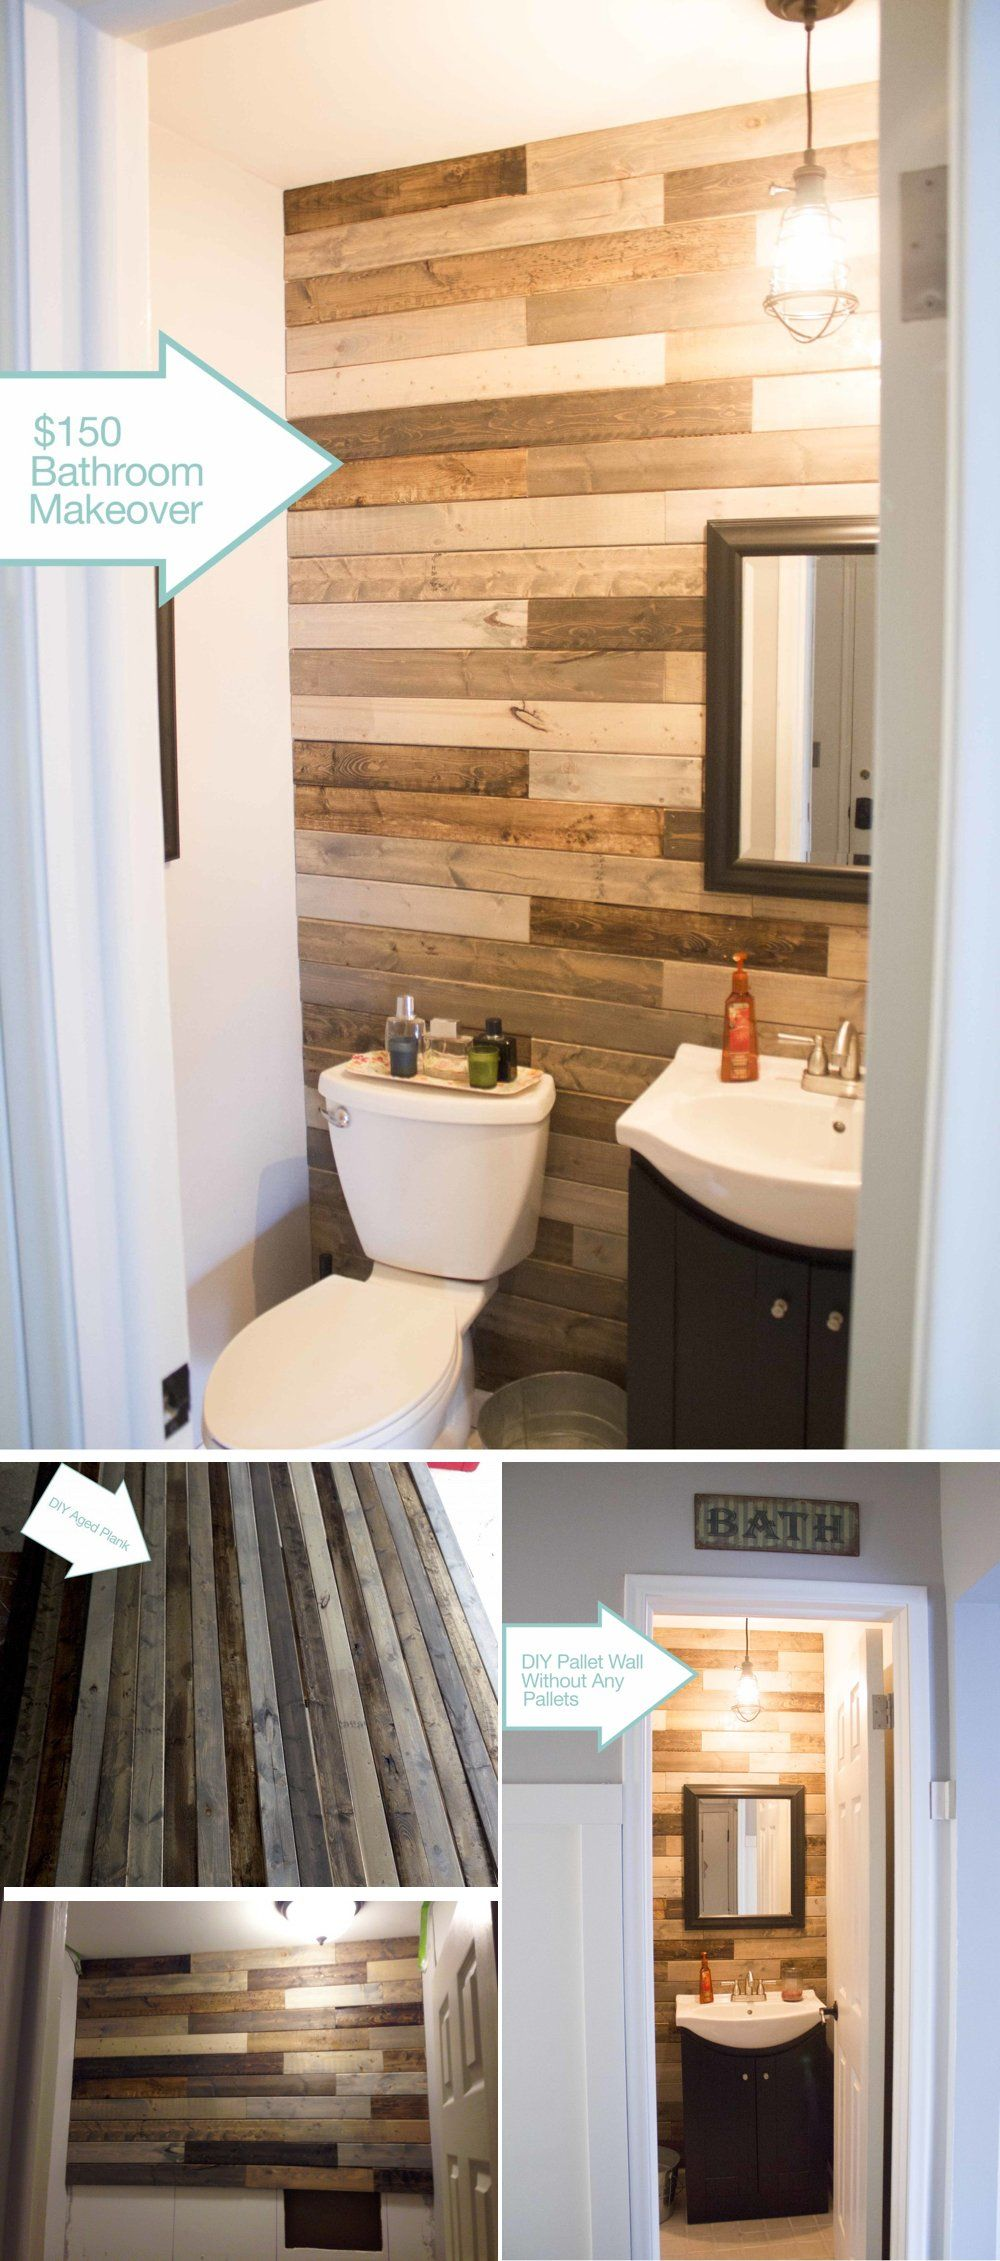 15 Beautiful Wood Accent Wall Ideas To Upgrade Your Space Homelovr Bathroom Accent Wall Wood Paneling Makeover Paneling Makeover